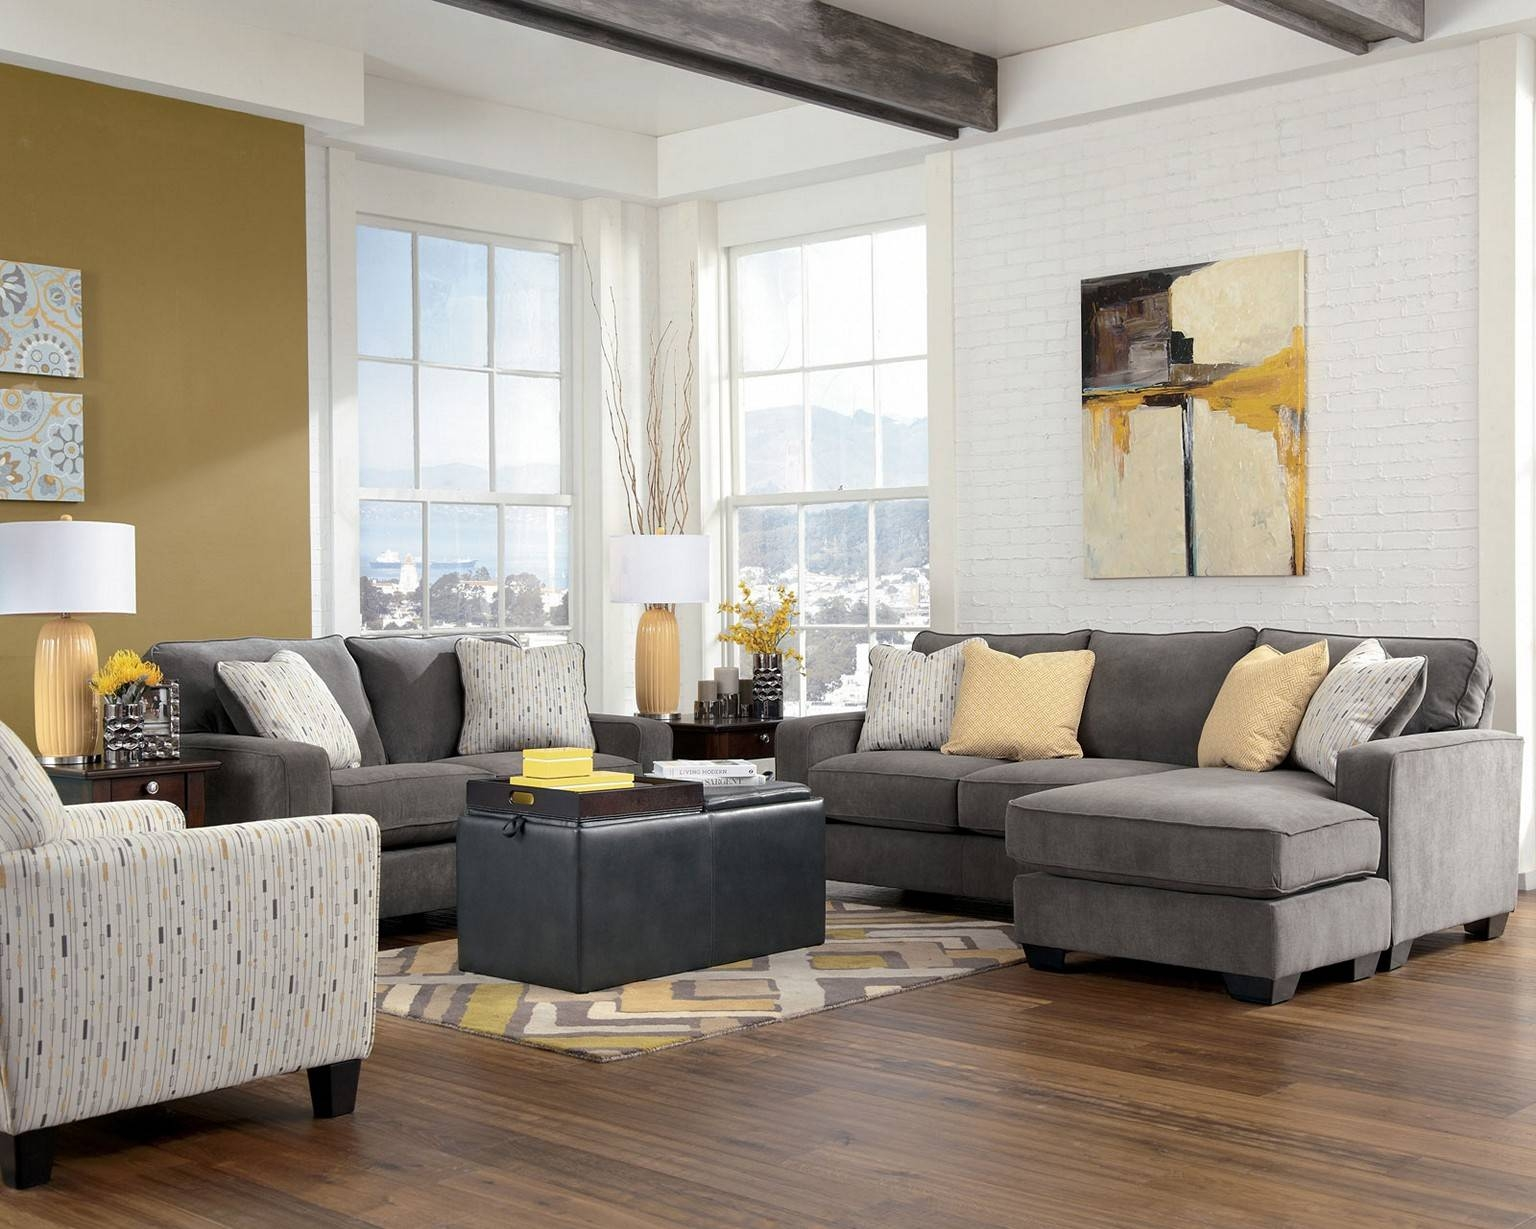 Colour Scheme For Living Room With Grey Sofa | Centerfieldbar throughout Living Room With Grey Sofas (Image 7 of 15)